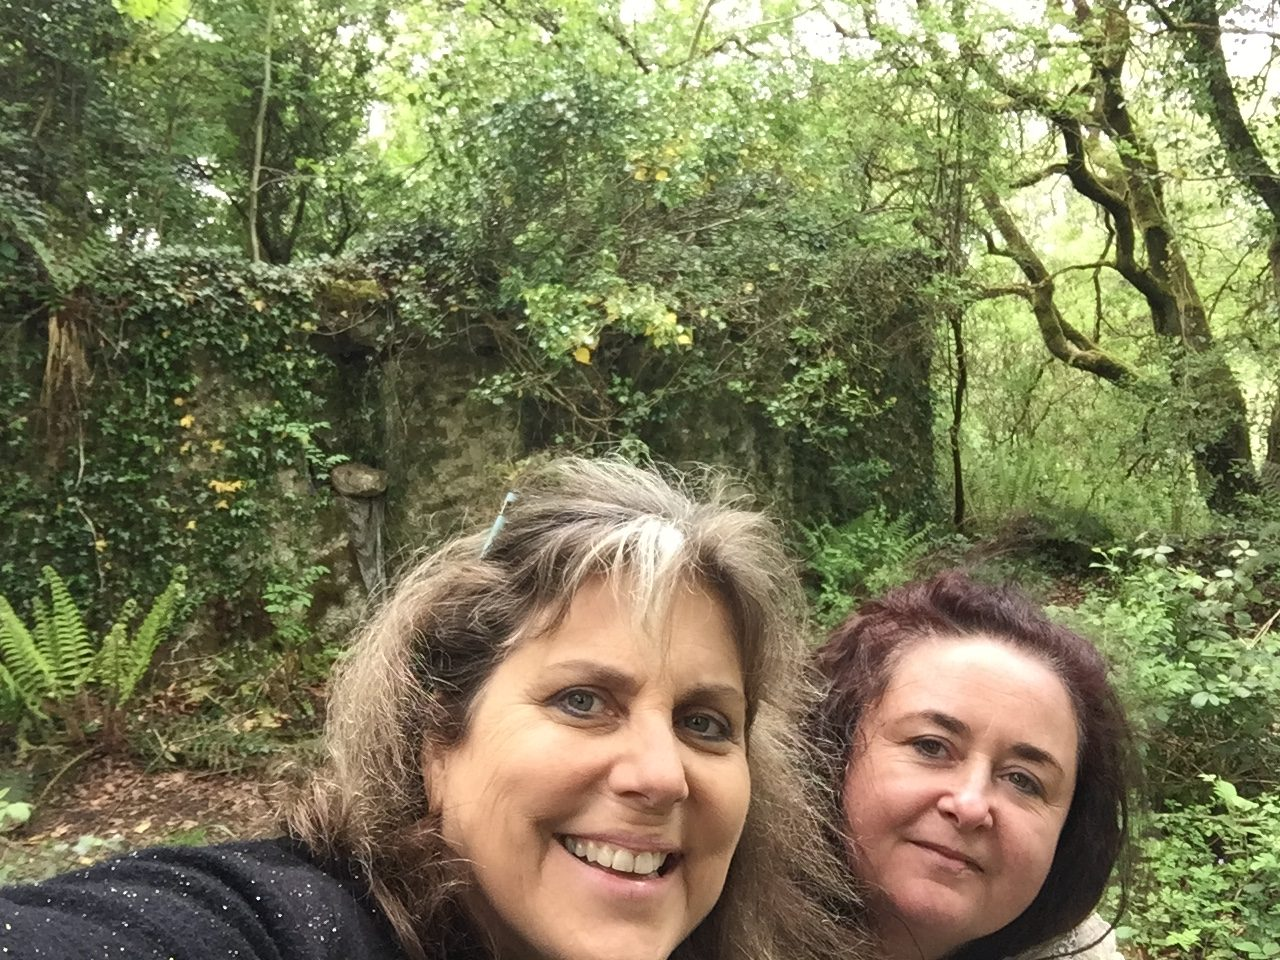 Mindie Burgoyne and Ruth O'Hagan at Biddy Early's cottage